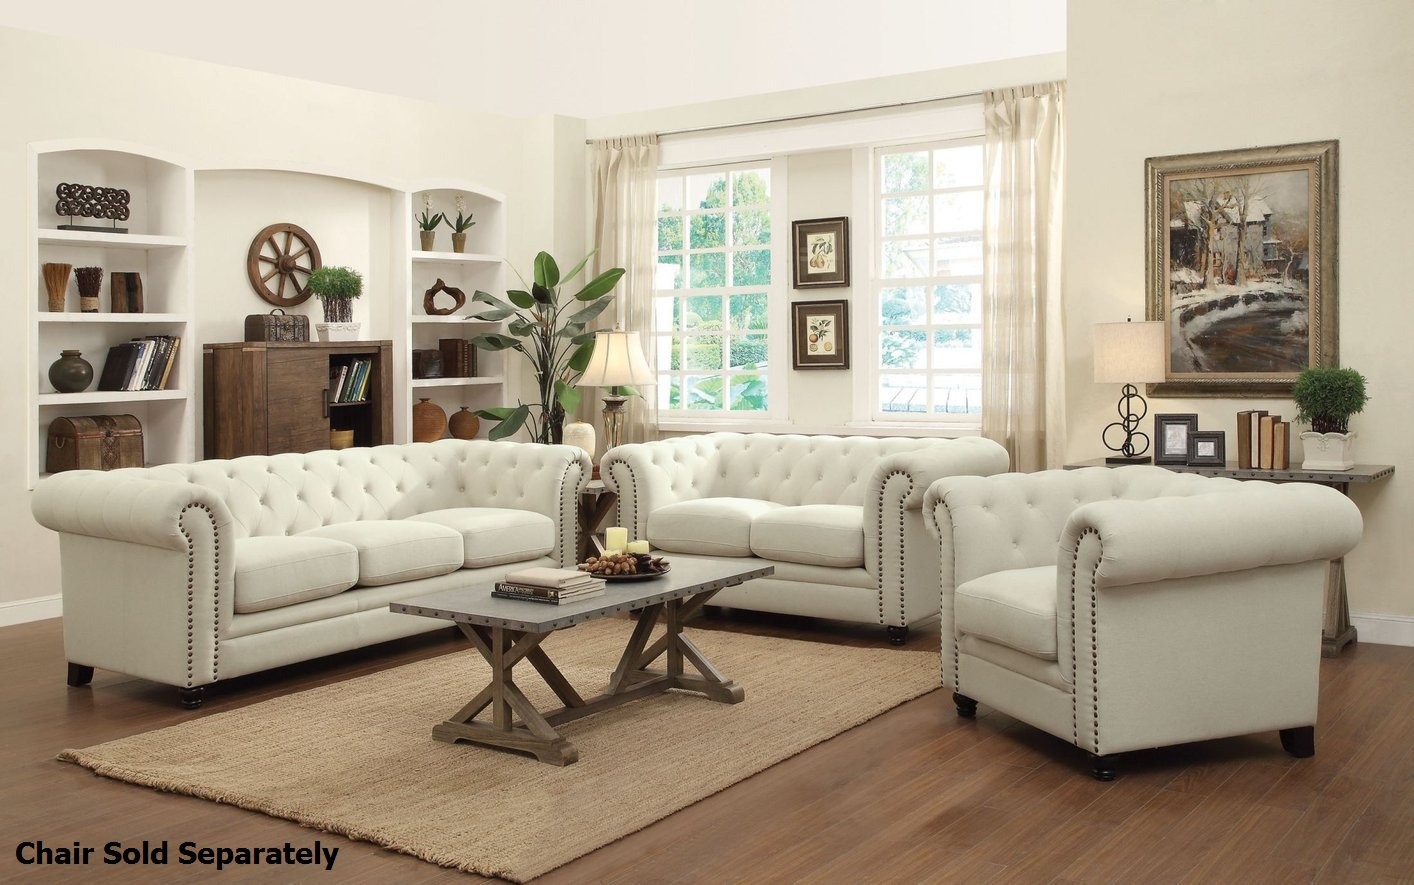 Awesome Sofa And Loveseat Set 71 With Additional Modern Sofa Ideas with Sofa And Loveseat Set